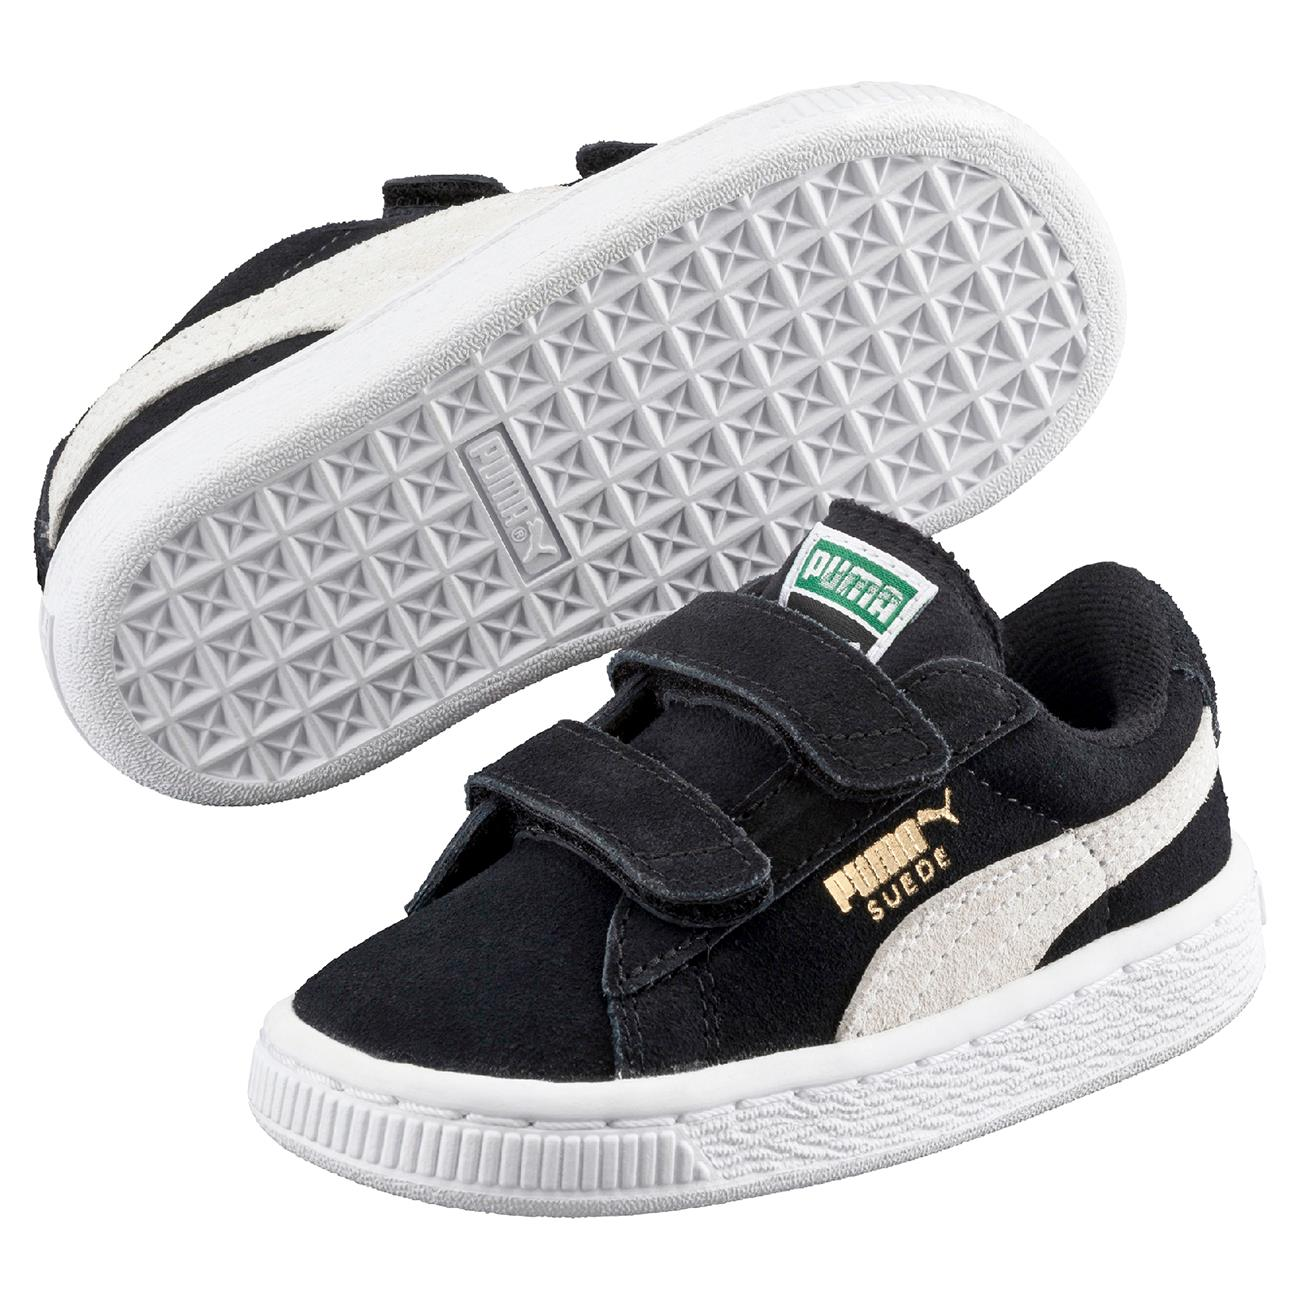 1bb13cd9f64 Puma Sneakers Suede 2 Straps Black/White Inf